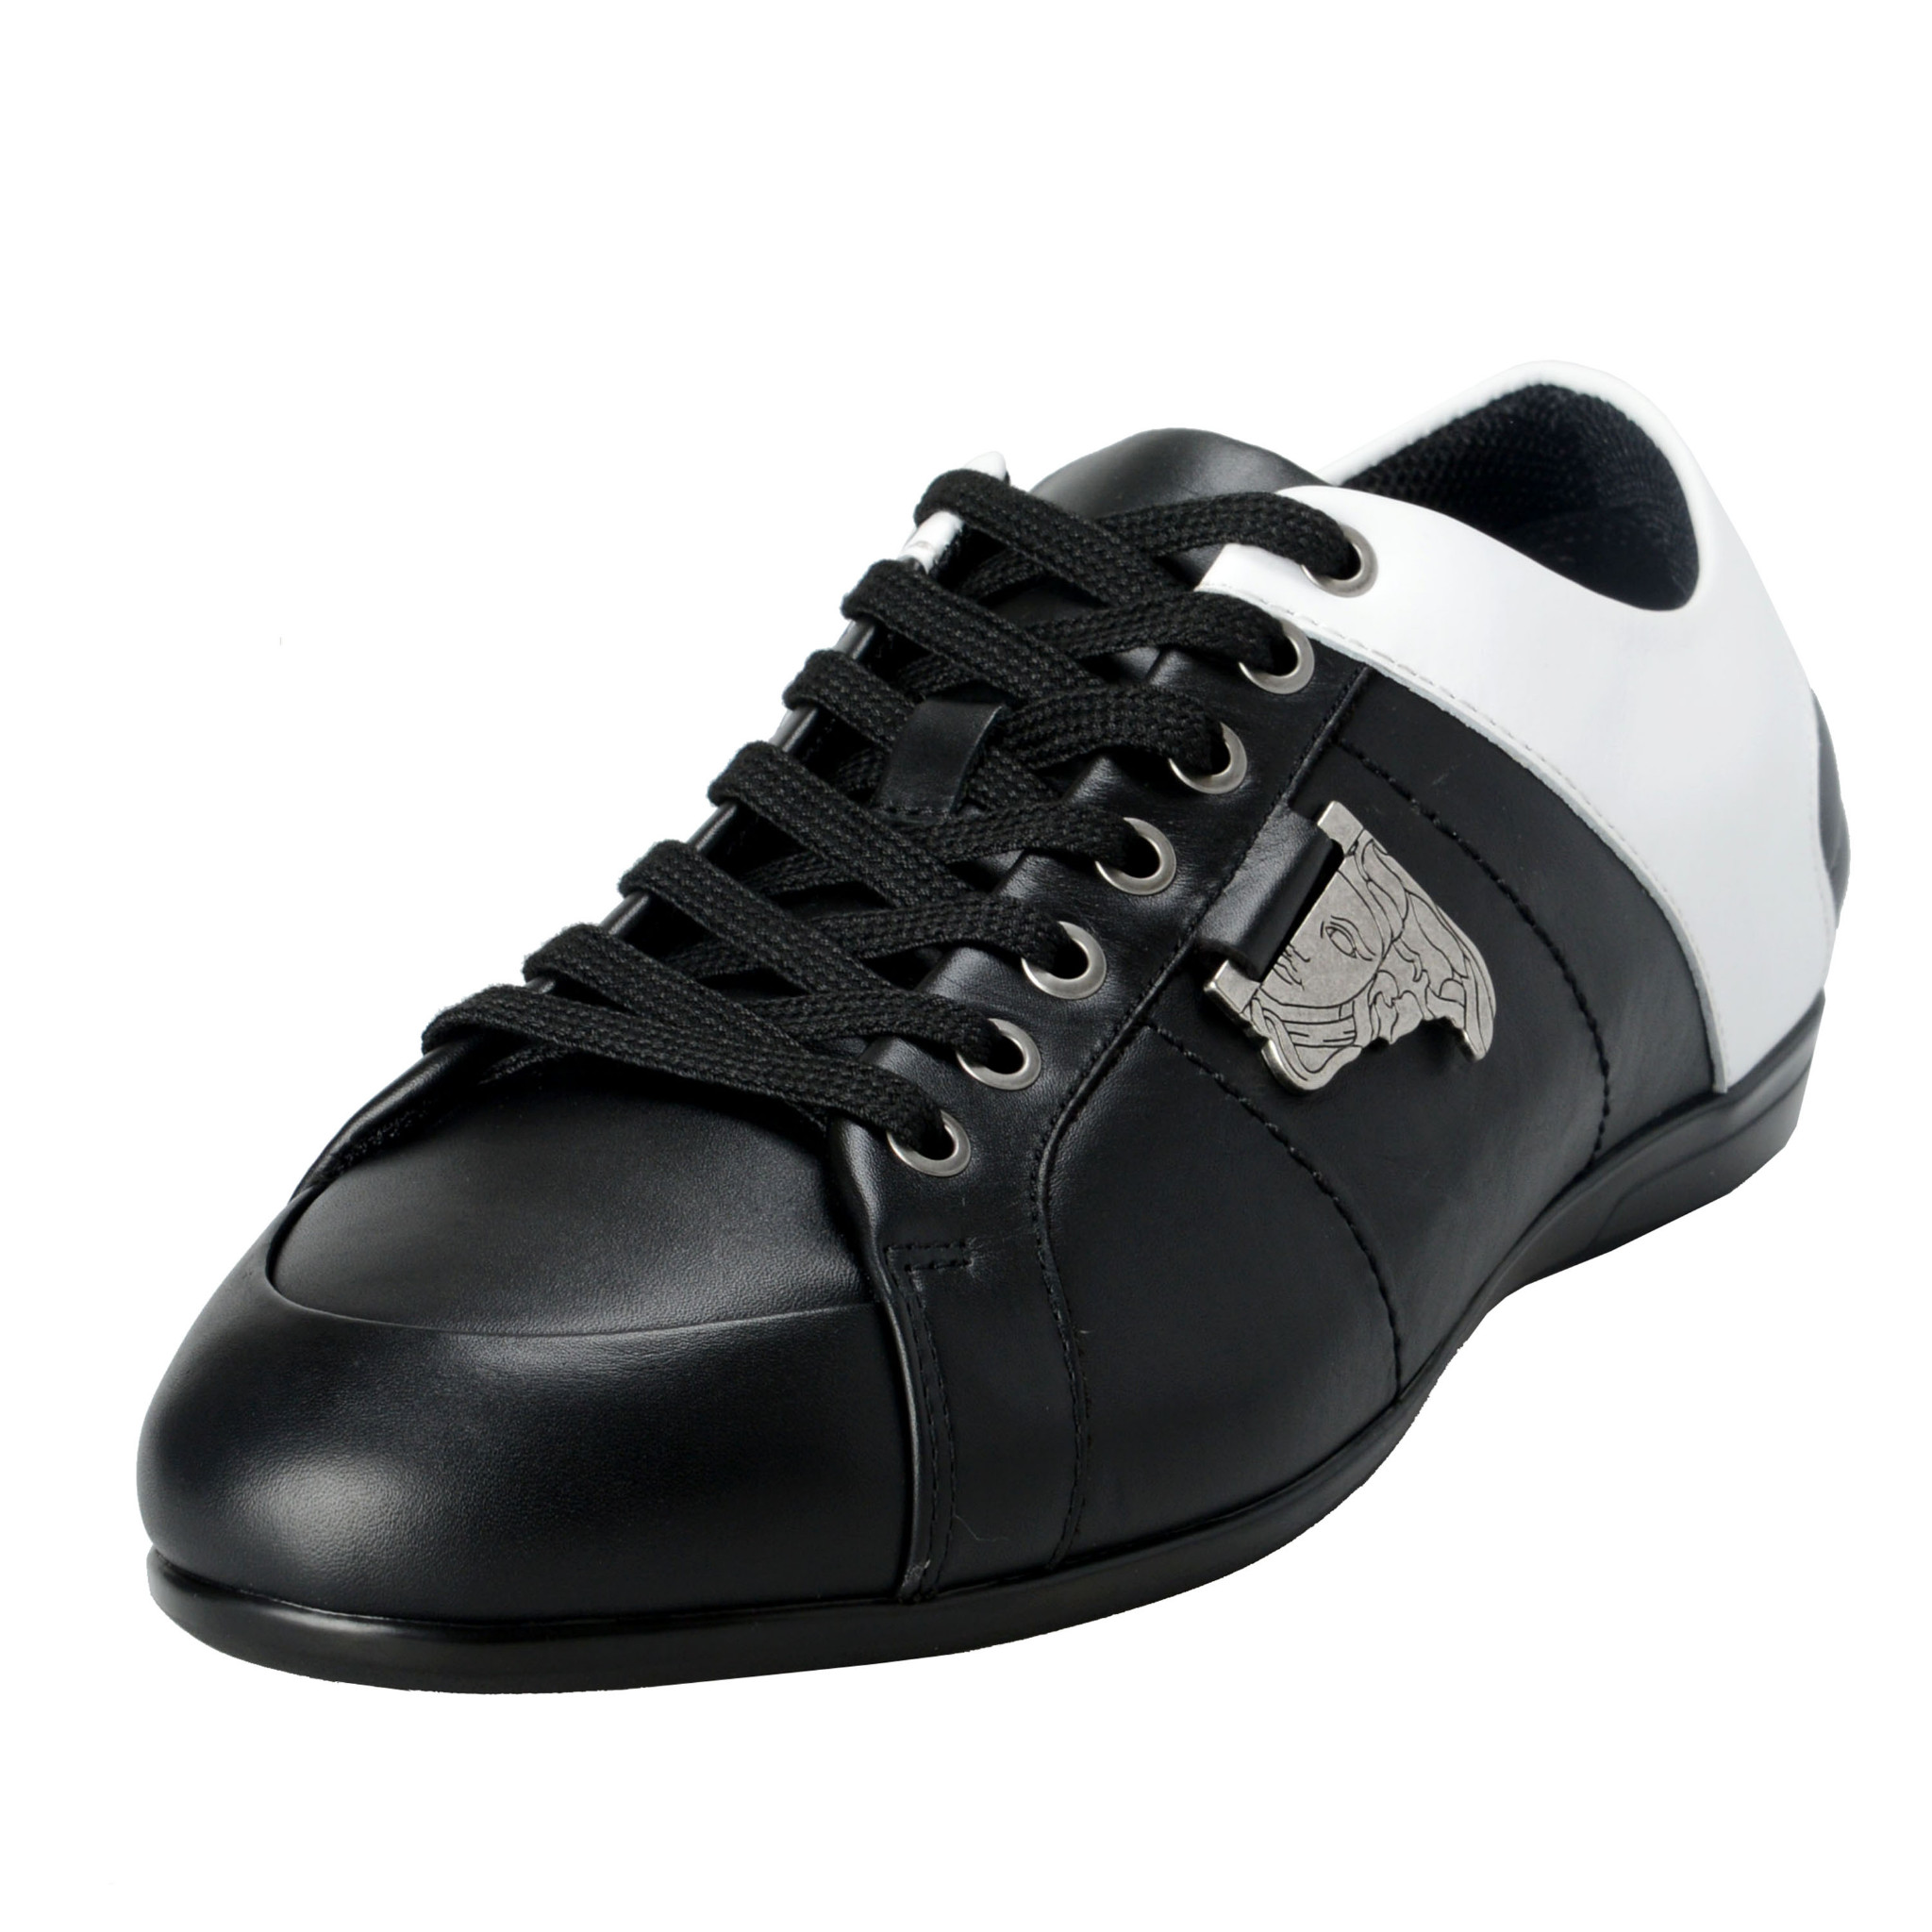 Details about Versace Collection Men's TwoTone Leather Fashion Sneakers  Shoes 6 7 8 9 10 11 12